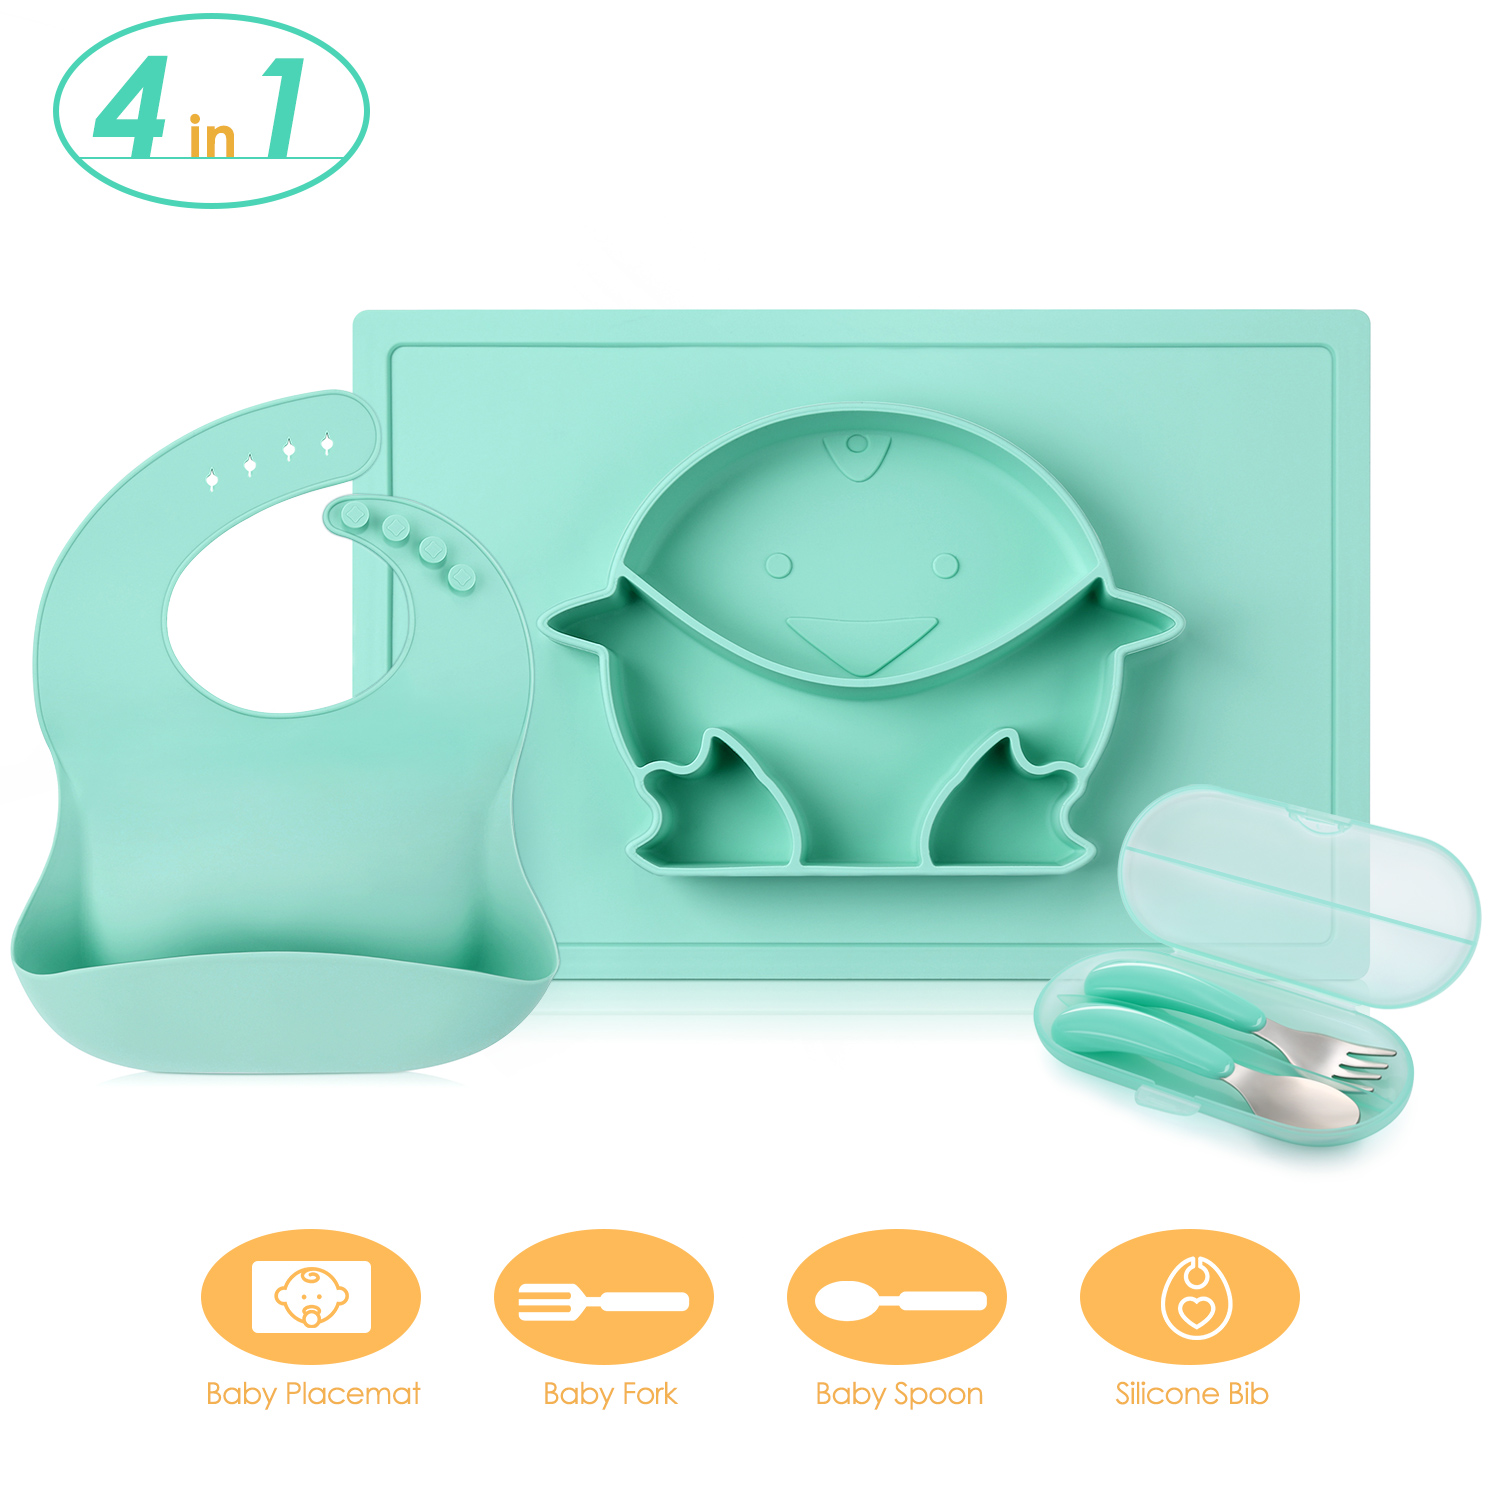 все цены на 4 In 1 Baby Silicone Dinnerware With Placemat / Bib / Fork / Spoon Baby Solid Feeding Tableware Set